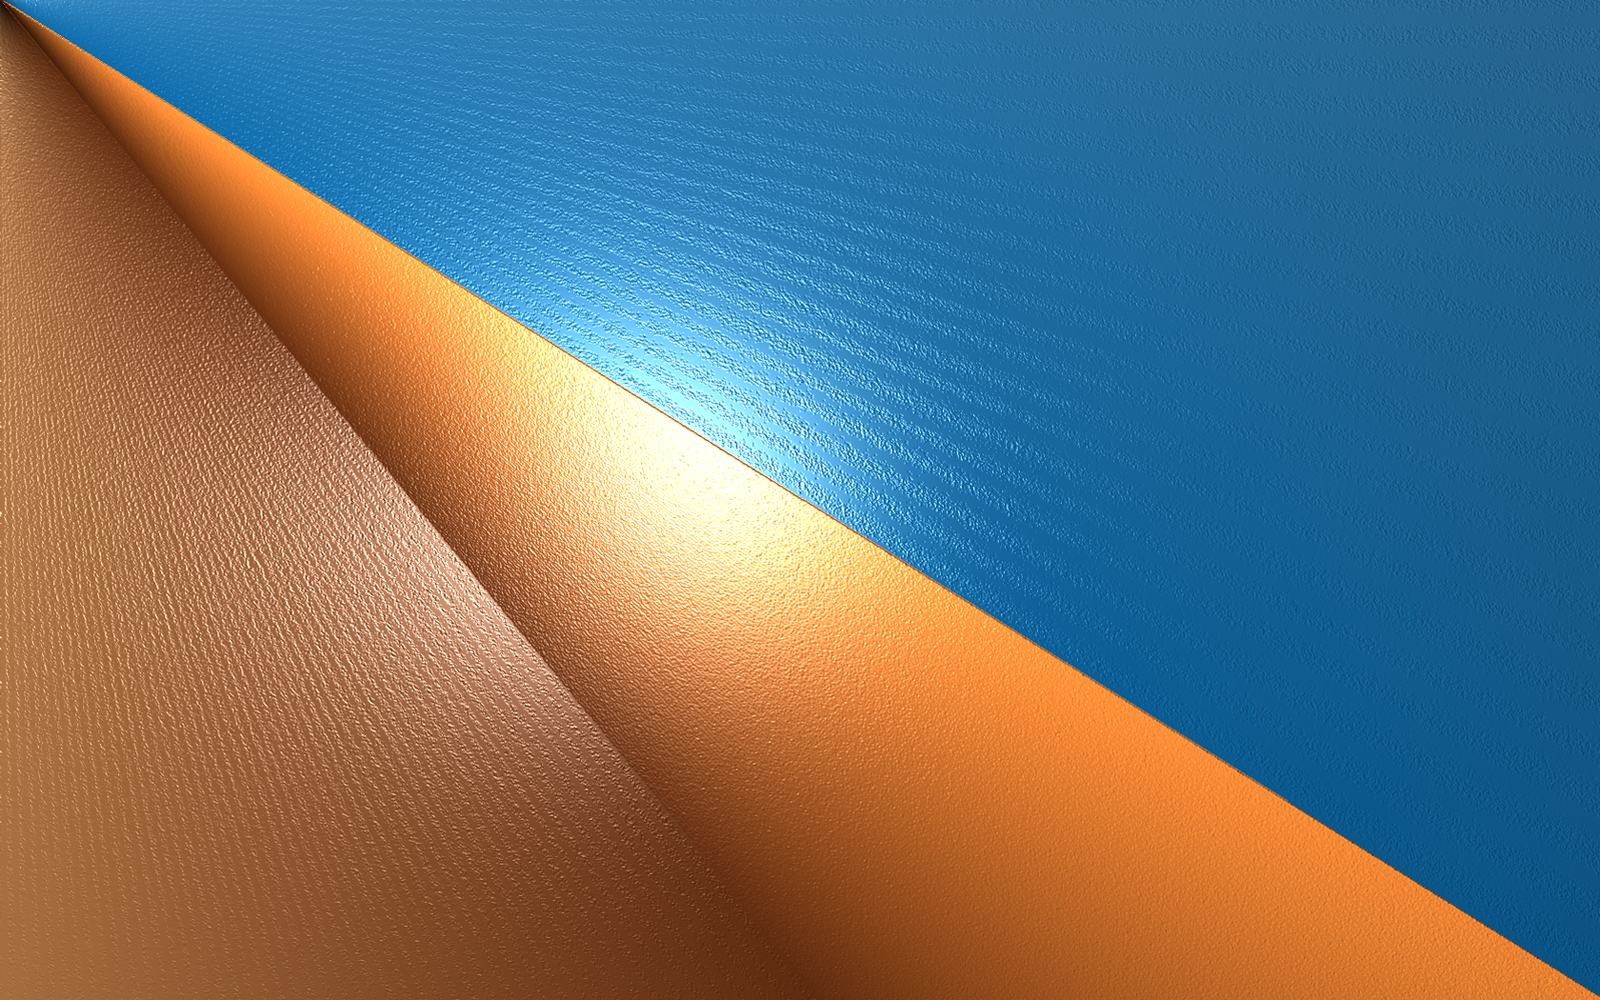 Full HD Wallpapers Backgrounds Blue Orange 1600x1000